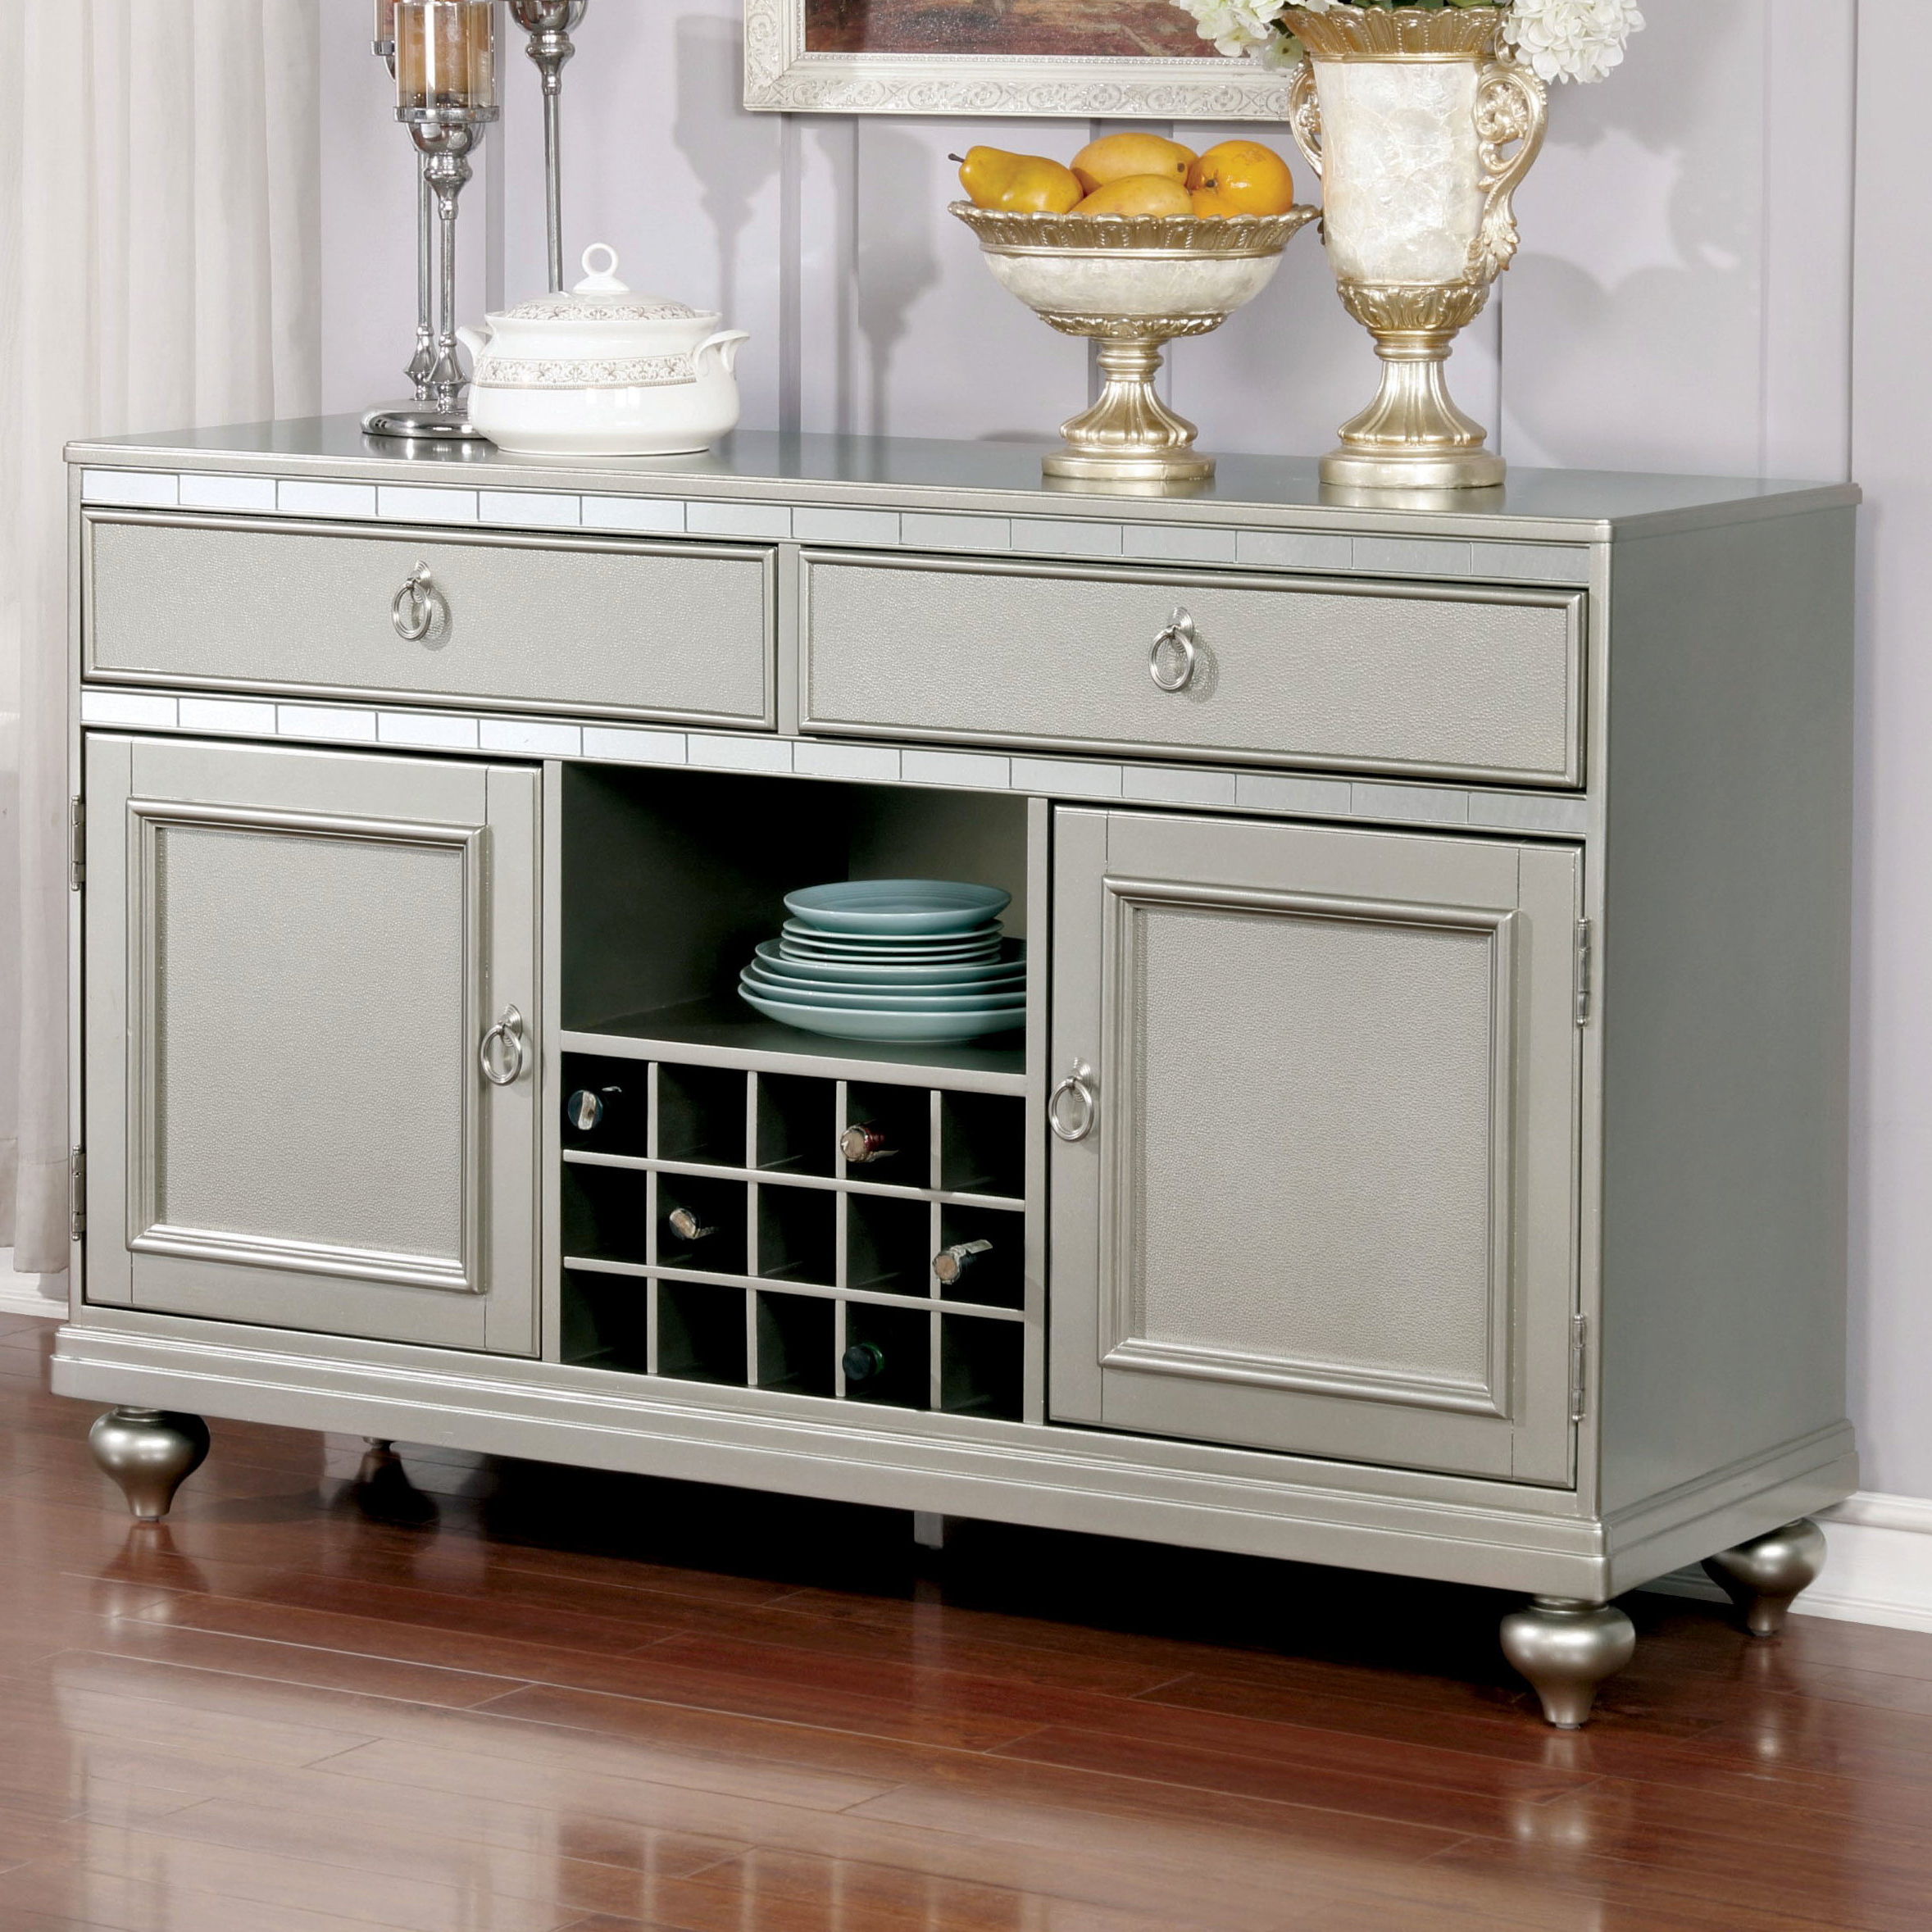 Grey Metal Sideboards & Buffets You'll Love In 2019 | Wayfair Pertaining To Casolino Sideboards (Gallery 16 of 20)